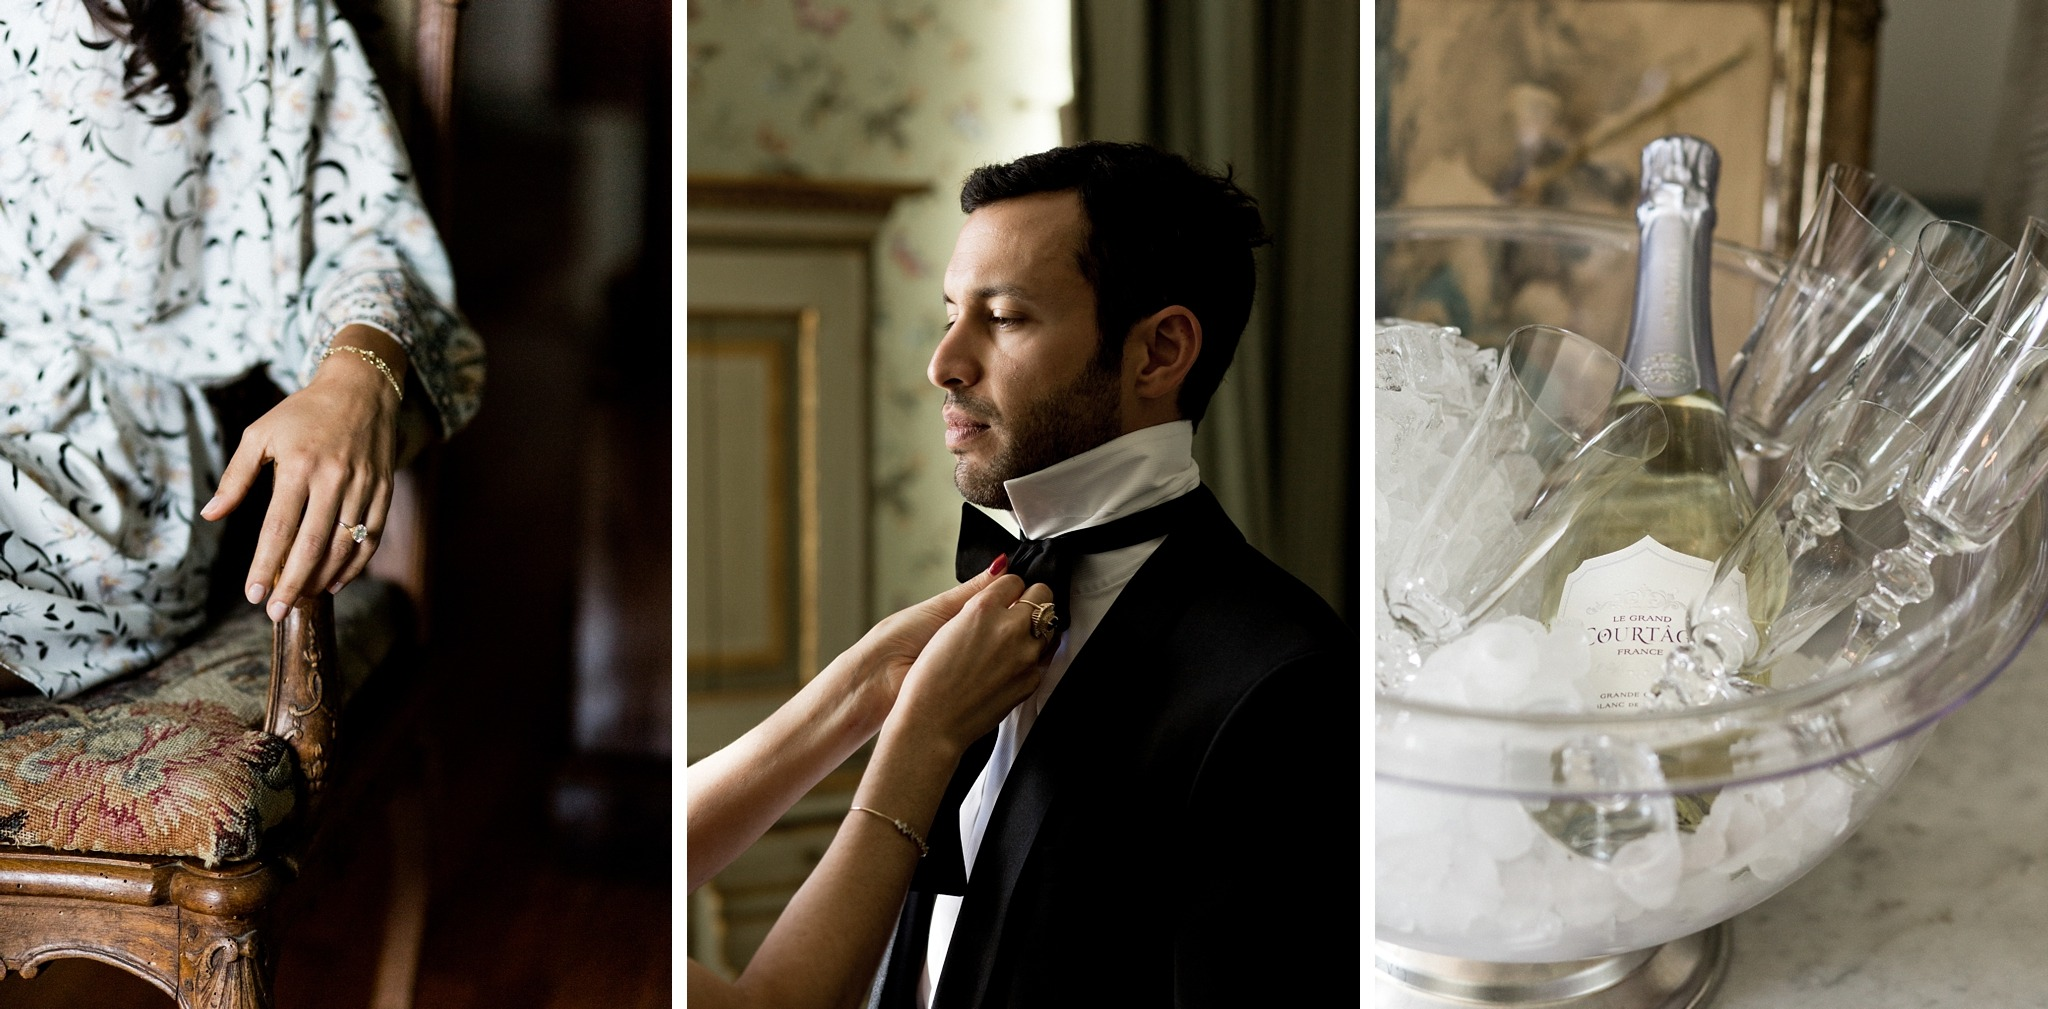 chateau-wedding-france-chanel-eric-as-seen-on-vogue-with-sarah-falugo-photographer_0185